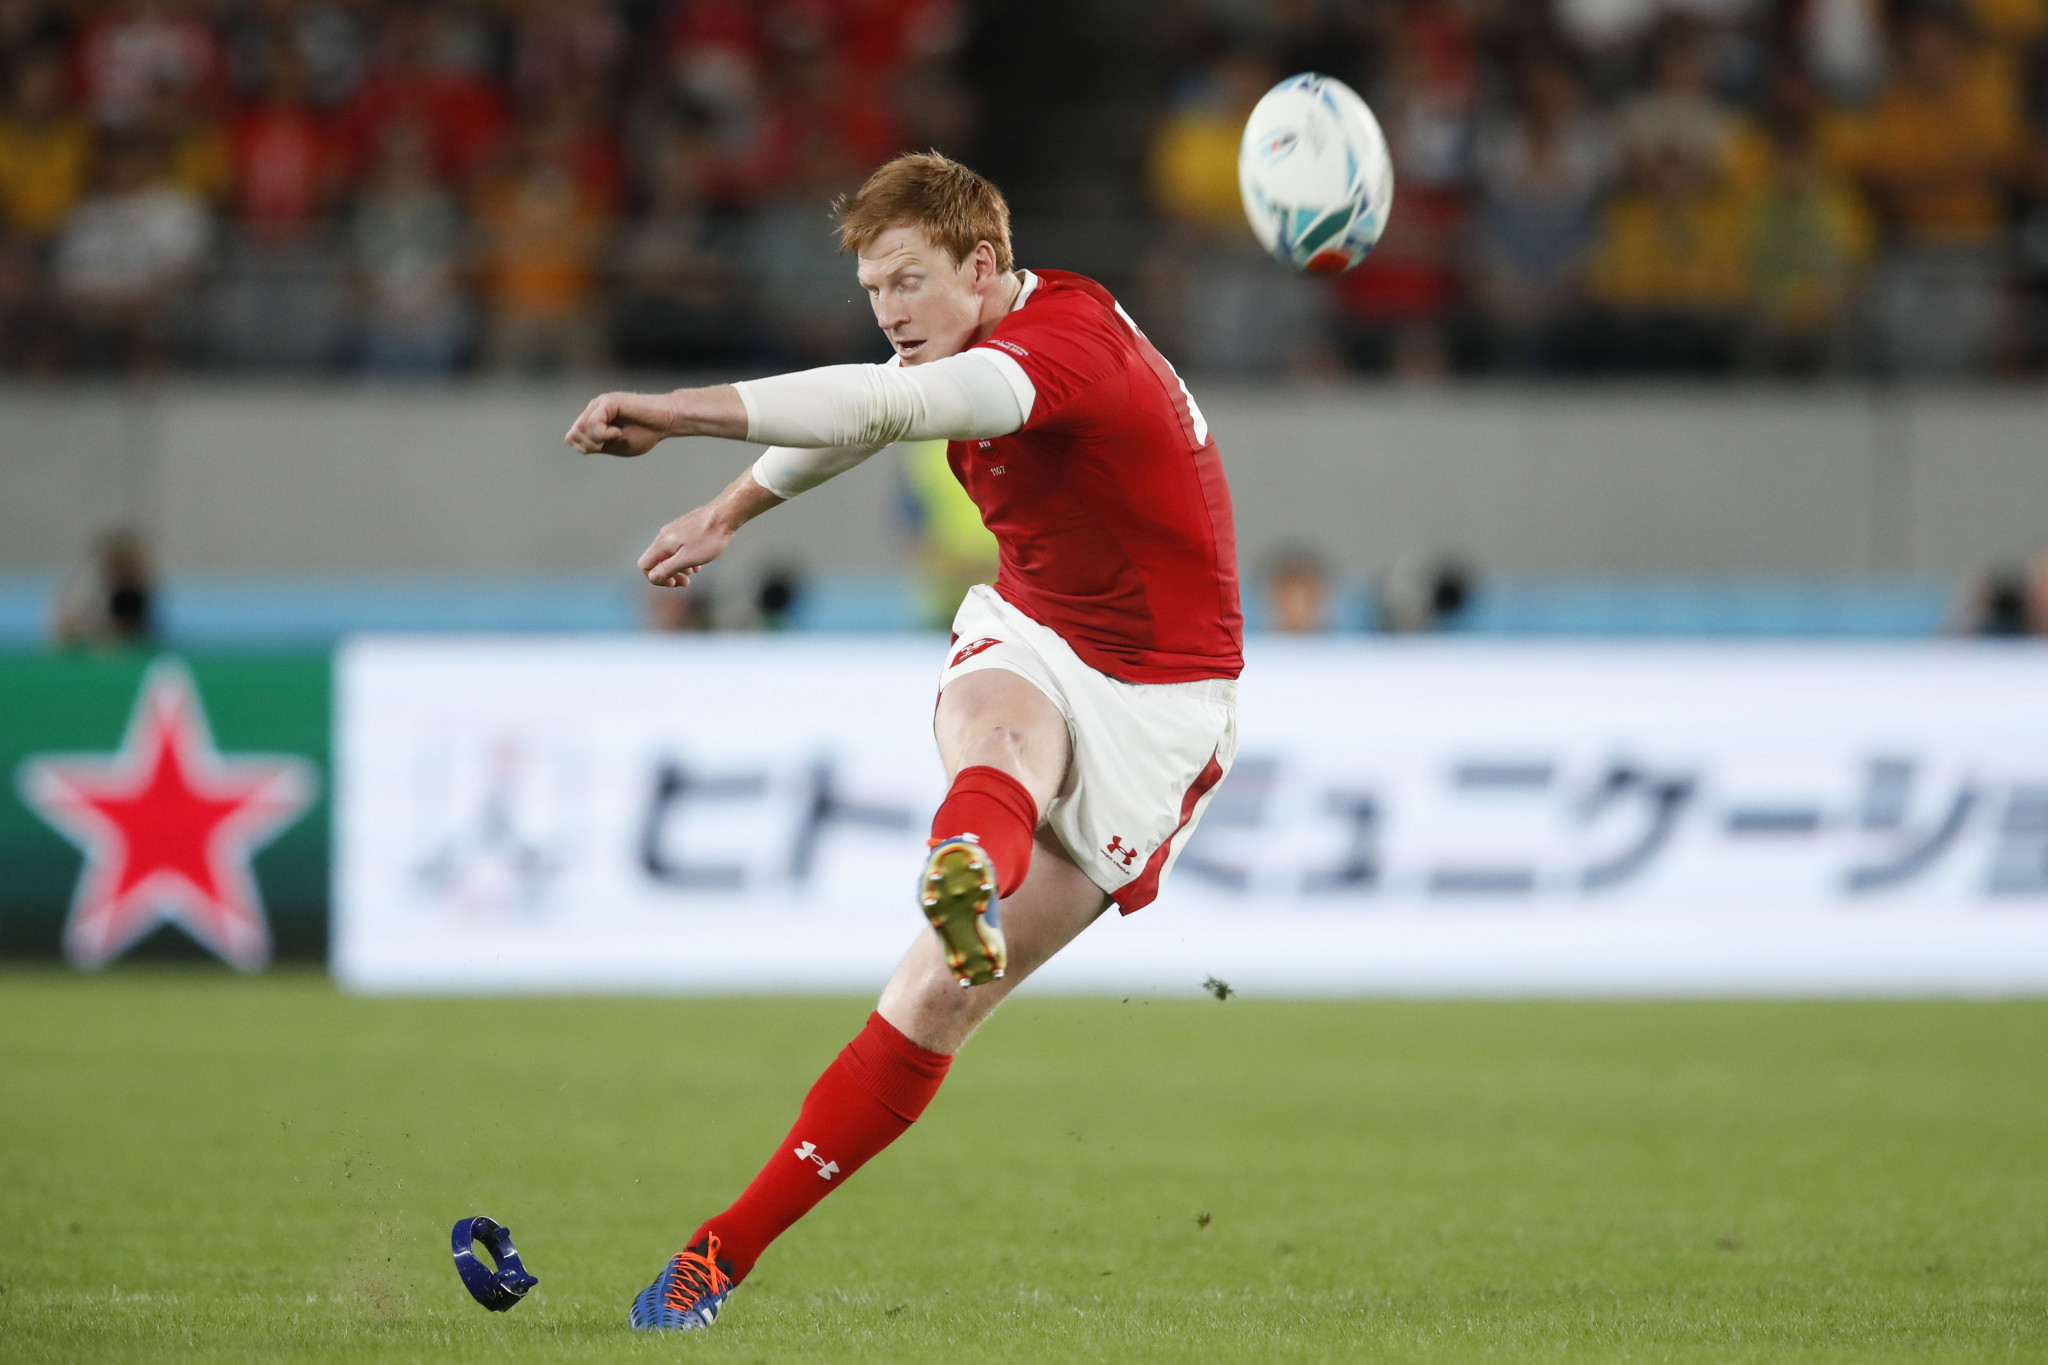 Rhys Patchell impressed with the boot and Wales hung on ©Getty Images